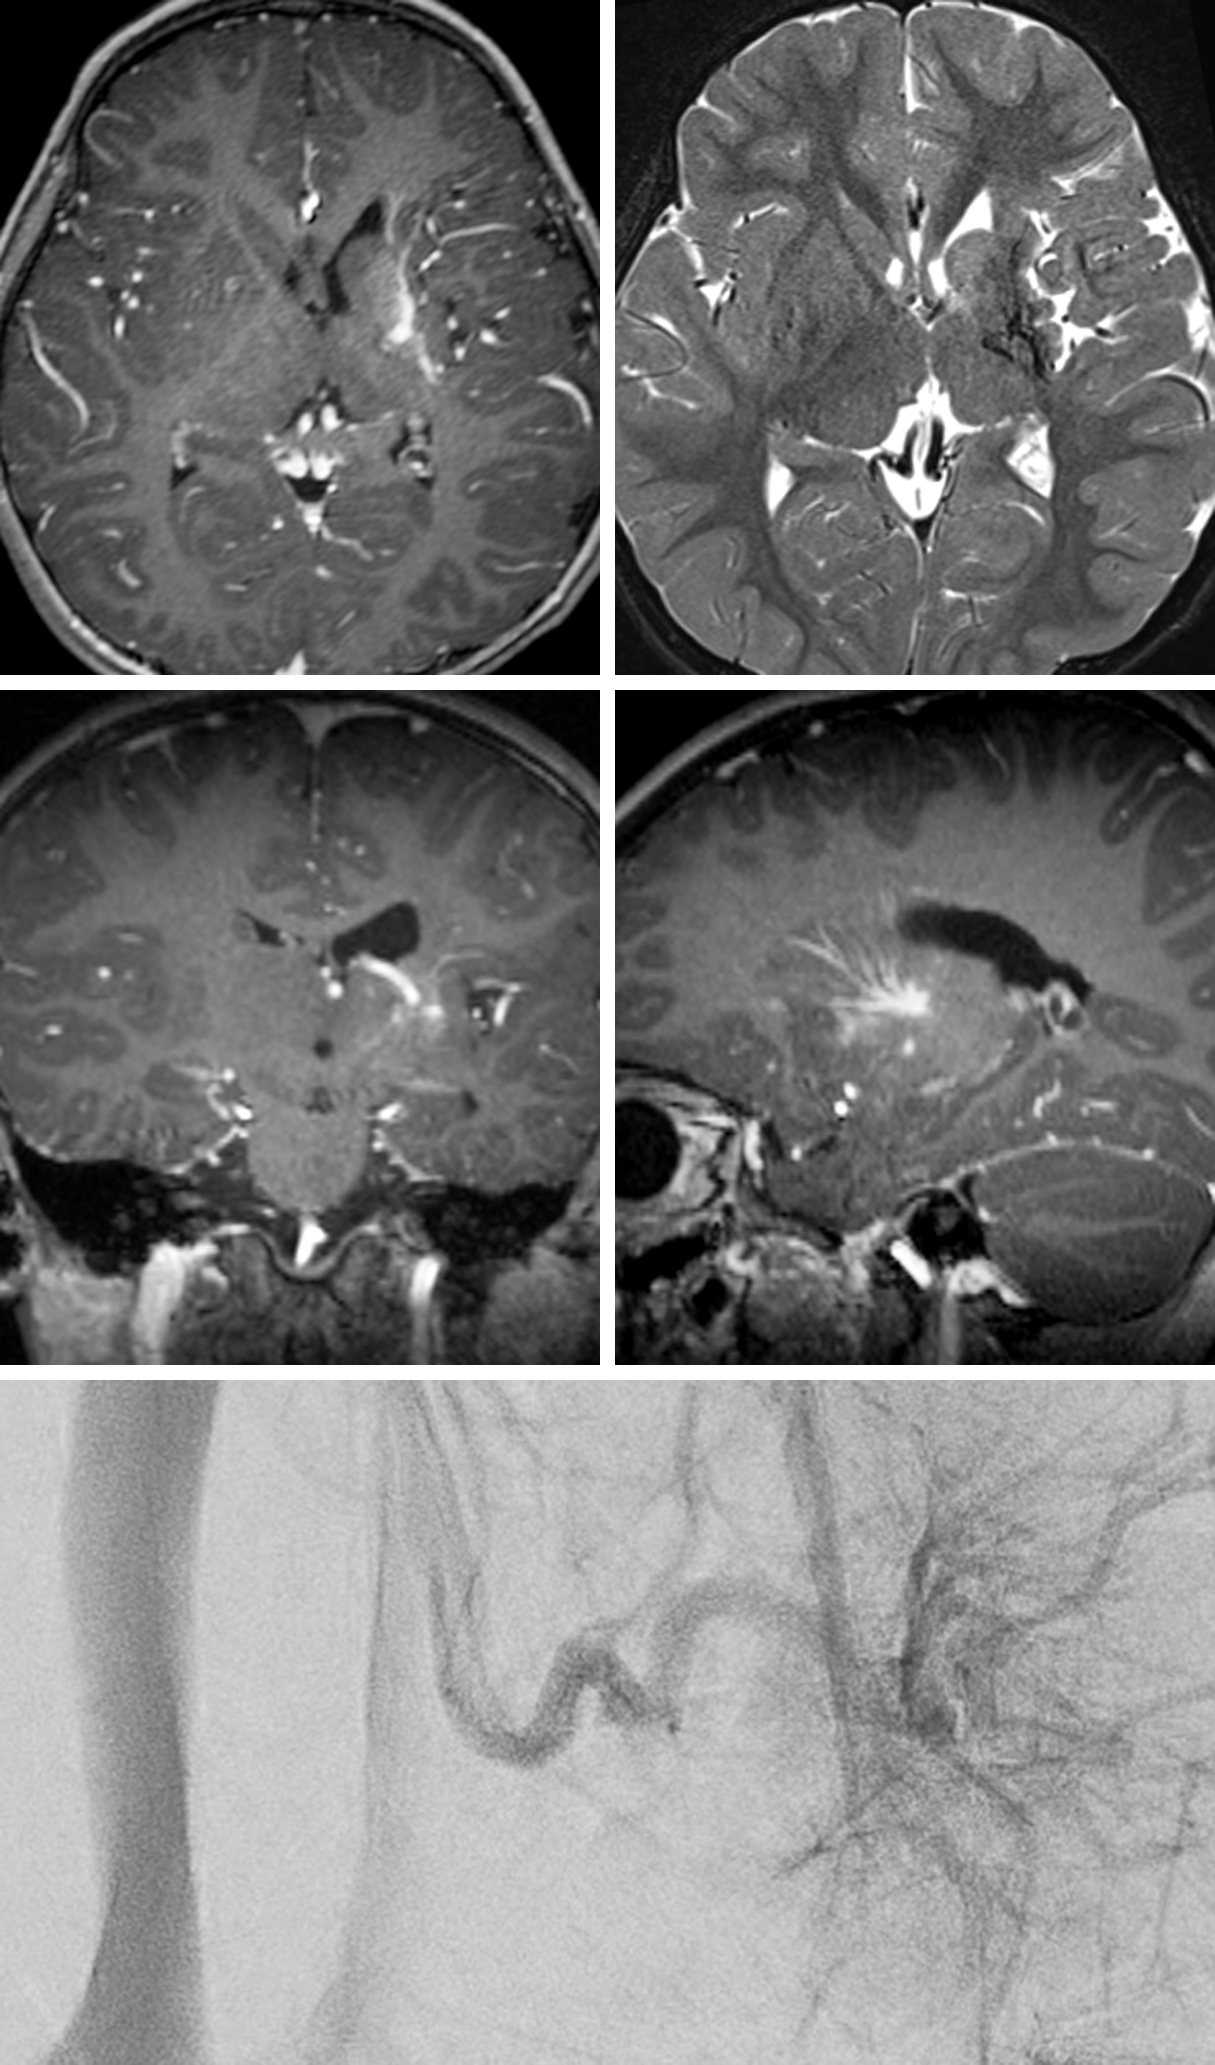 "Figure 2: 6-year-old female with seizure - ""evaluate for AVM"": MRI image series (left) identifies an abnormal cluster of vessels emerging from the left subinsular and left lentiform nuclei and converging at the near the ependymal surface of the left lateral ventricle. Oblique projection DSA image (right), left internal carotid injection (venous phase image) confirms a developmental venous anomaly with umbrella-like configuration of anomalous subinsular veins coalescing into a prominent subependymal vein without early venous opacification to suggest high flow shunt."